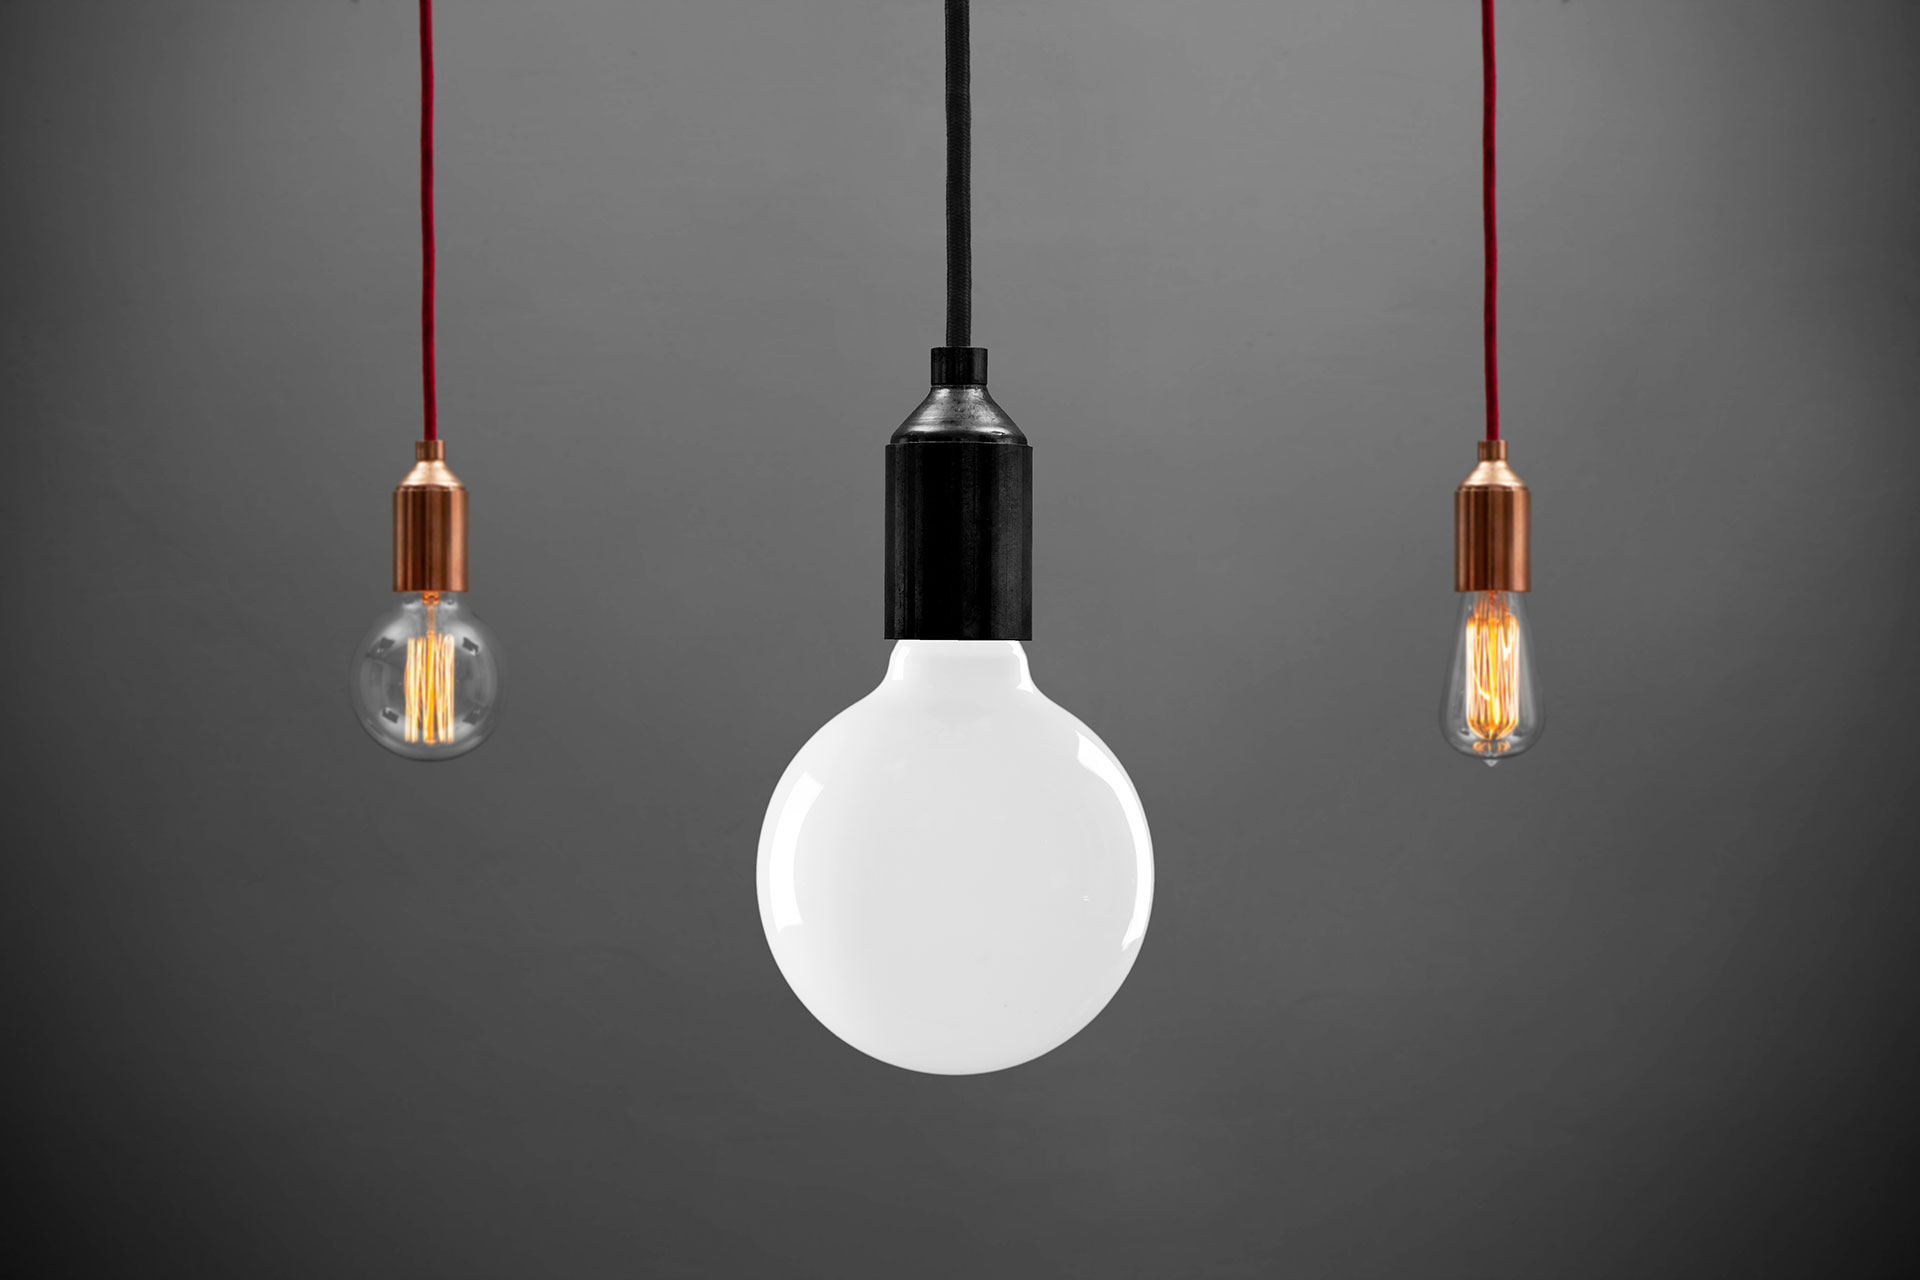 Simple metal pendant lamps in various colors and loft style